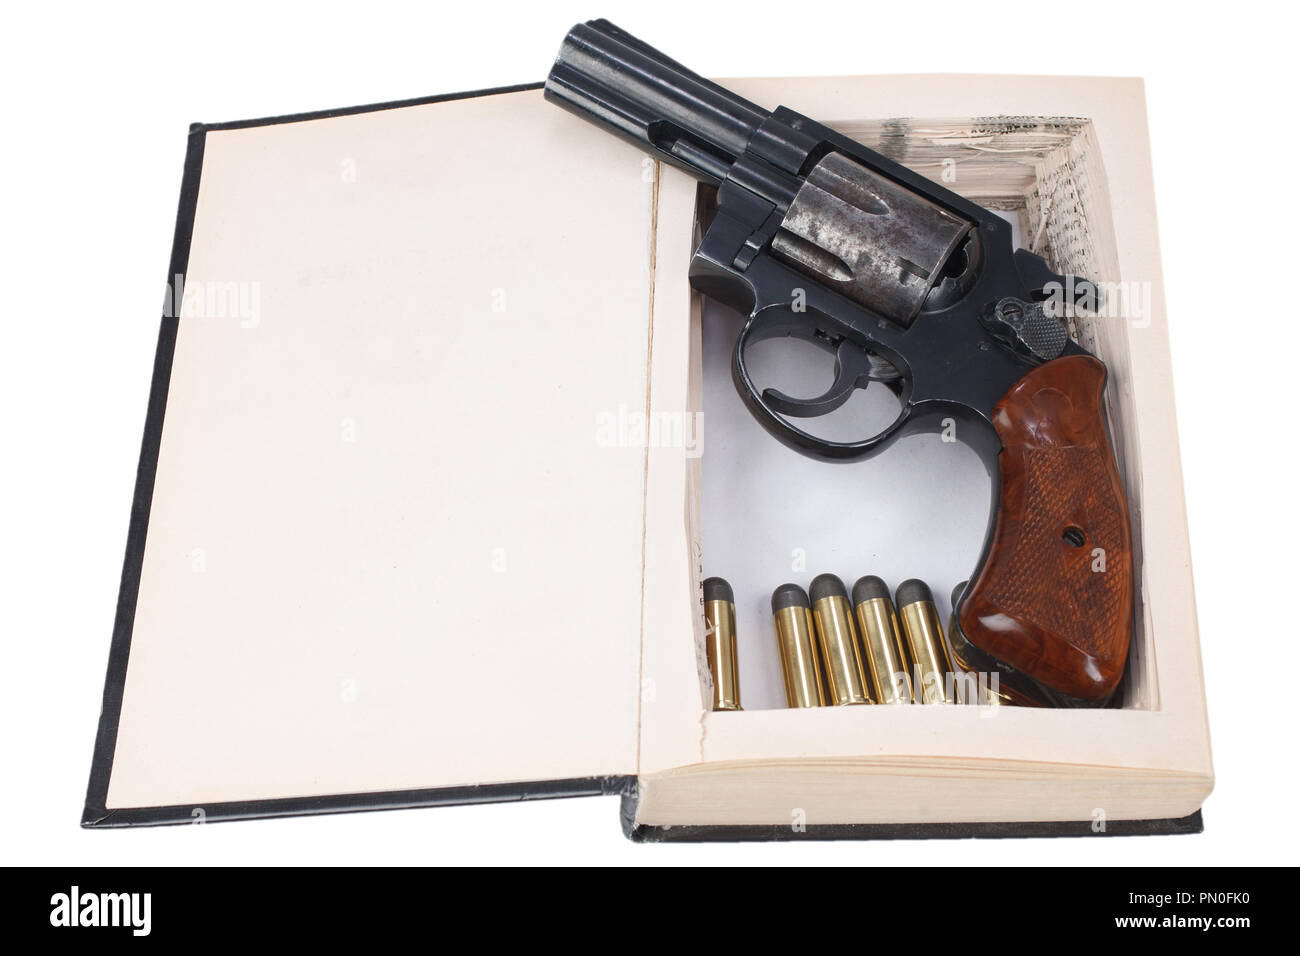 38 caliber revolver gun with cartridges hidden in a book